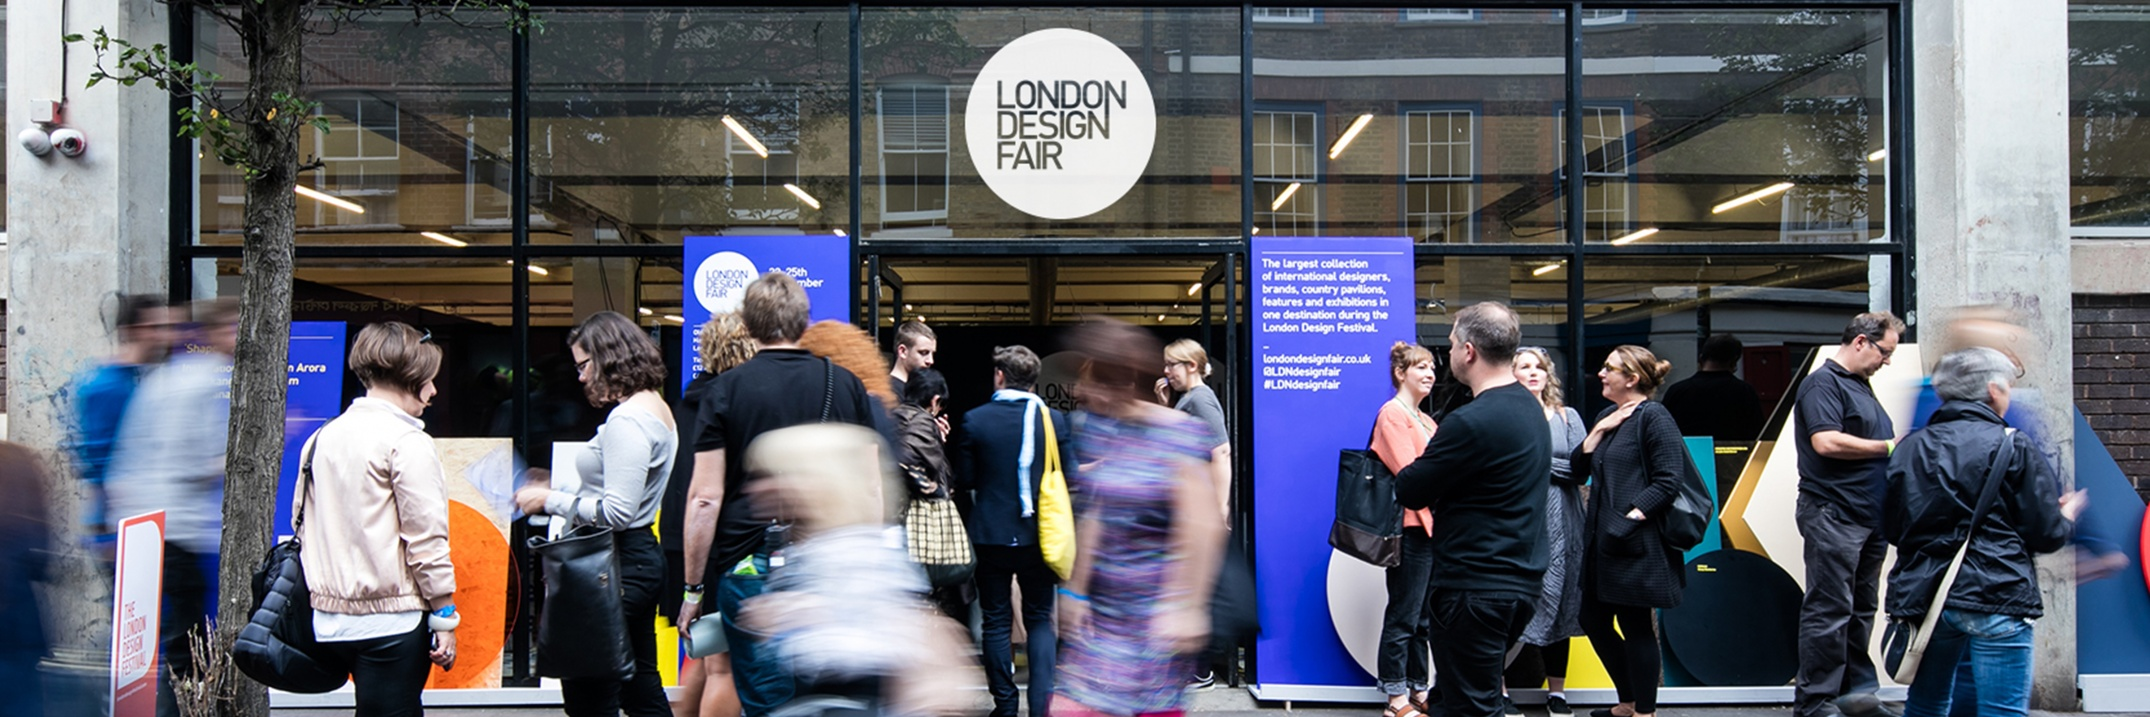 What's on in London this weekend? London Design Festival 2017 what's on in london this weekend What's on in London This Weekend? Top Venues at London Design Festival ldf london design fair lead image 0